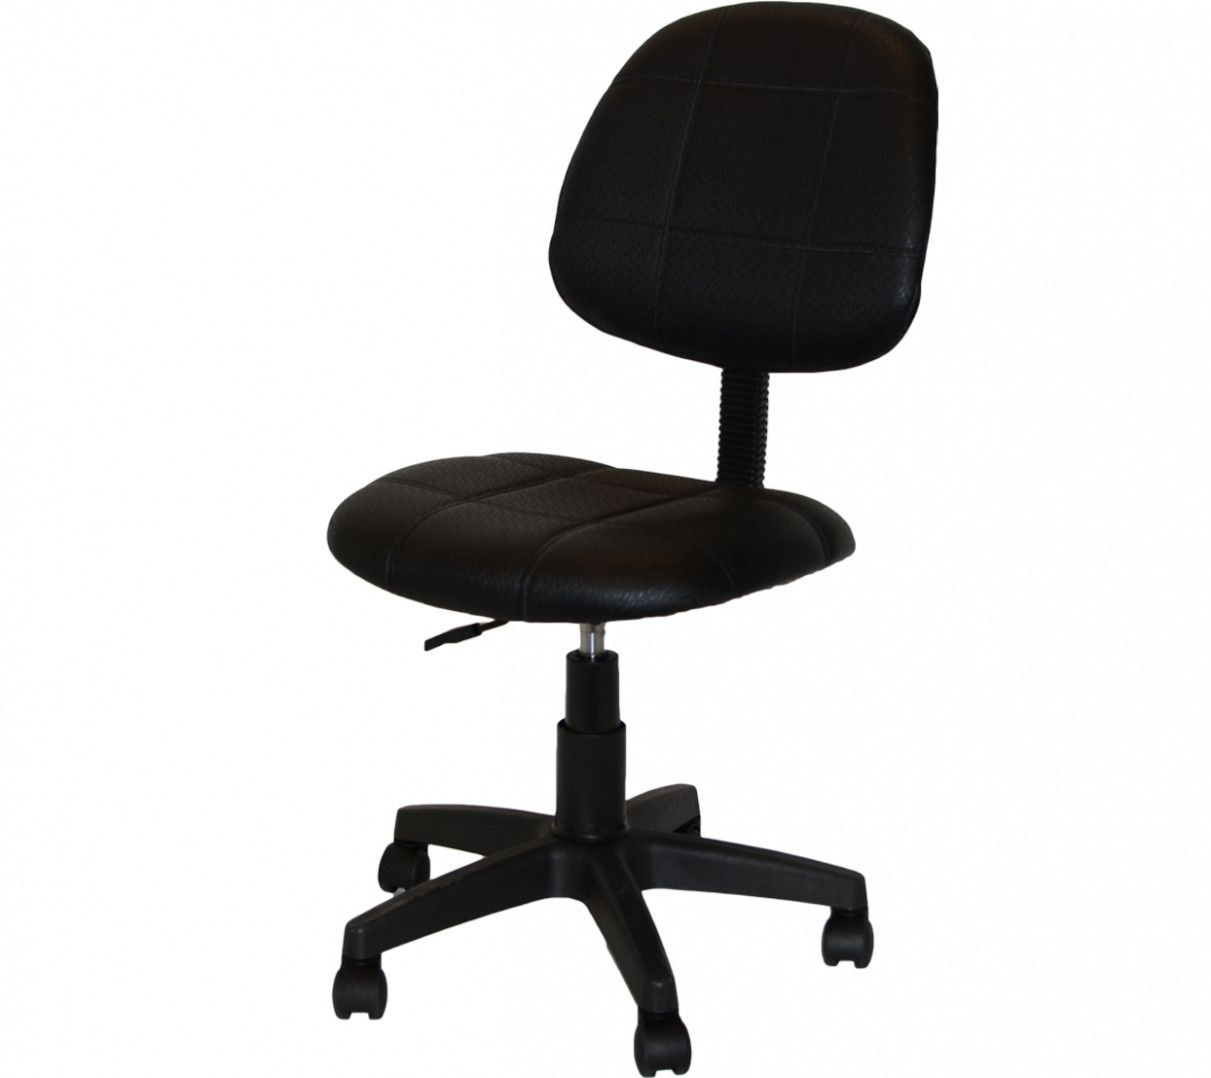 Office Rolling Chairs Furniture For Home Check More At Http Invisifile House Plans Ideas Pinterest Chair